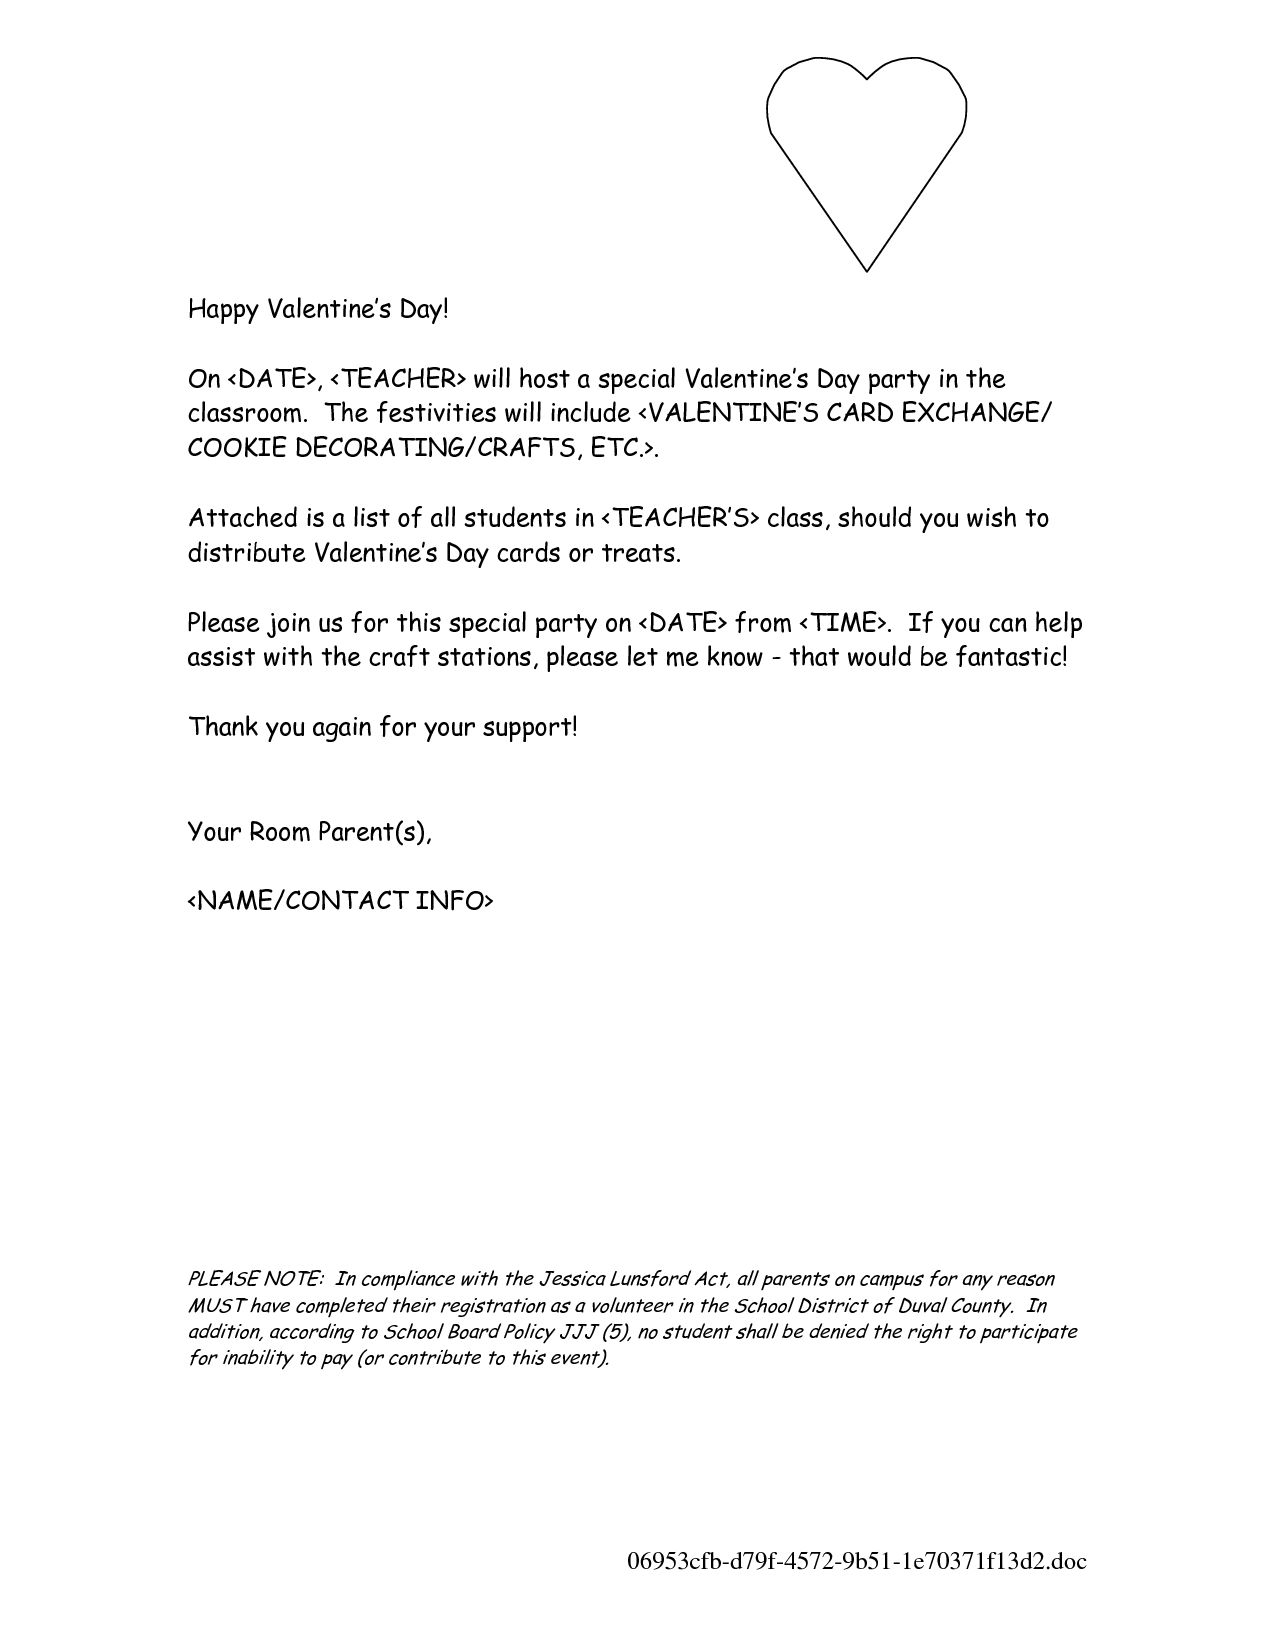 lovely valentines letter for boyfriend tumblr best moment formal